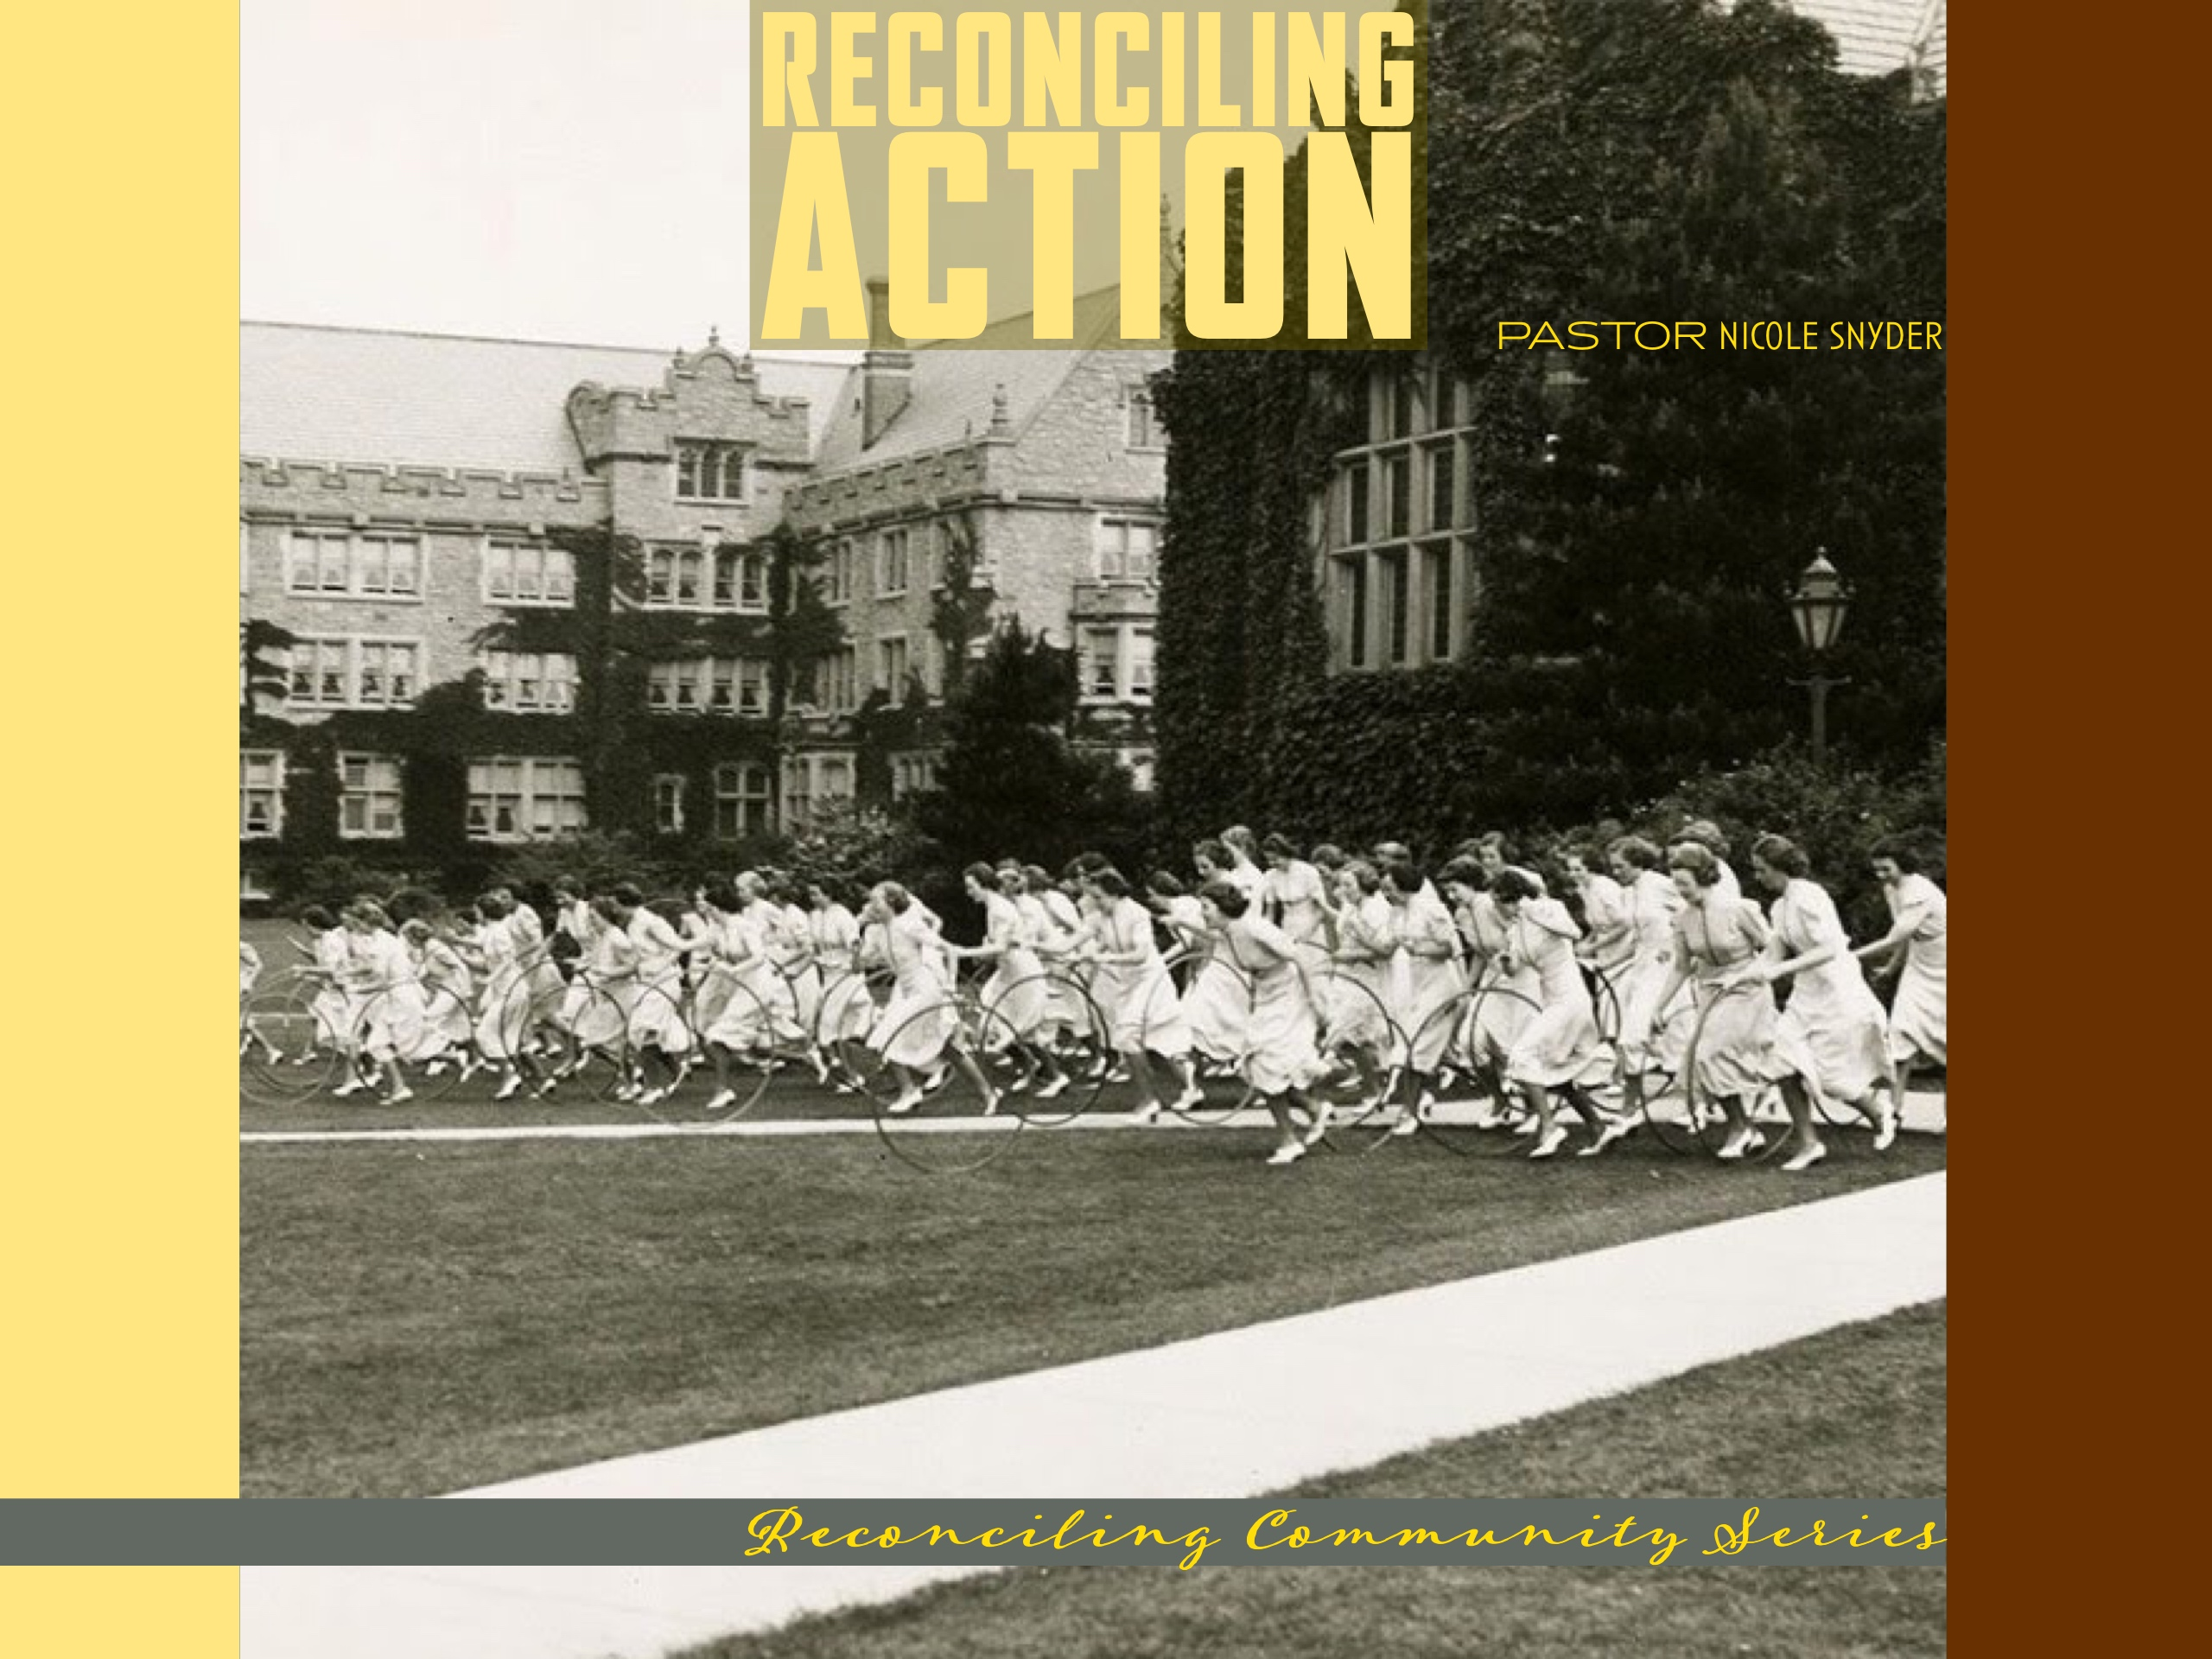 Reconciling Action